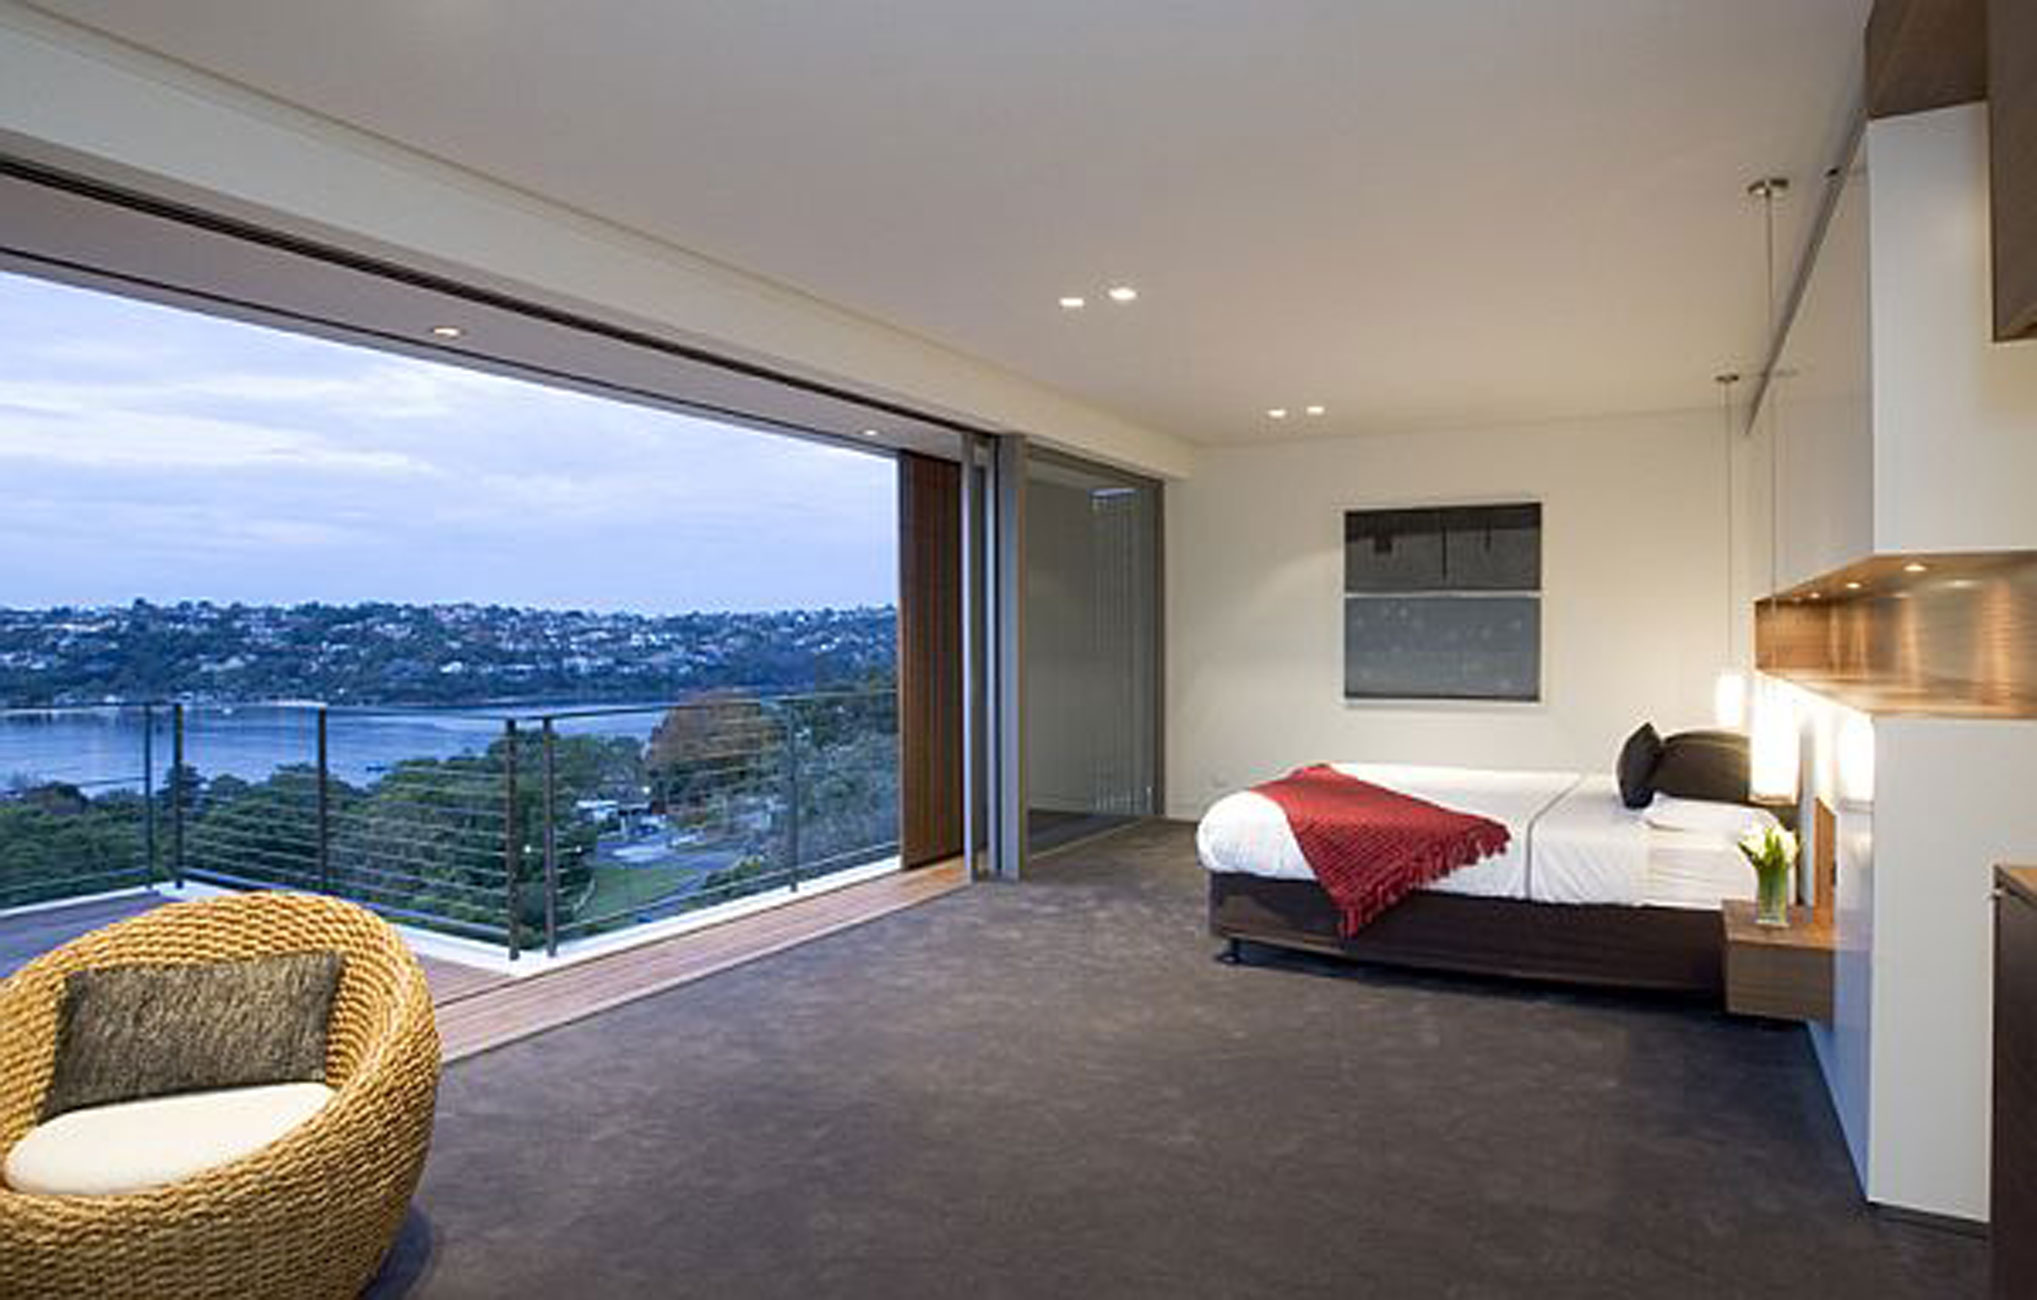 The Mosman, Luxurious Residence in Sydney from Corben